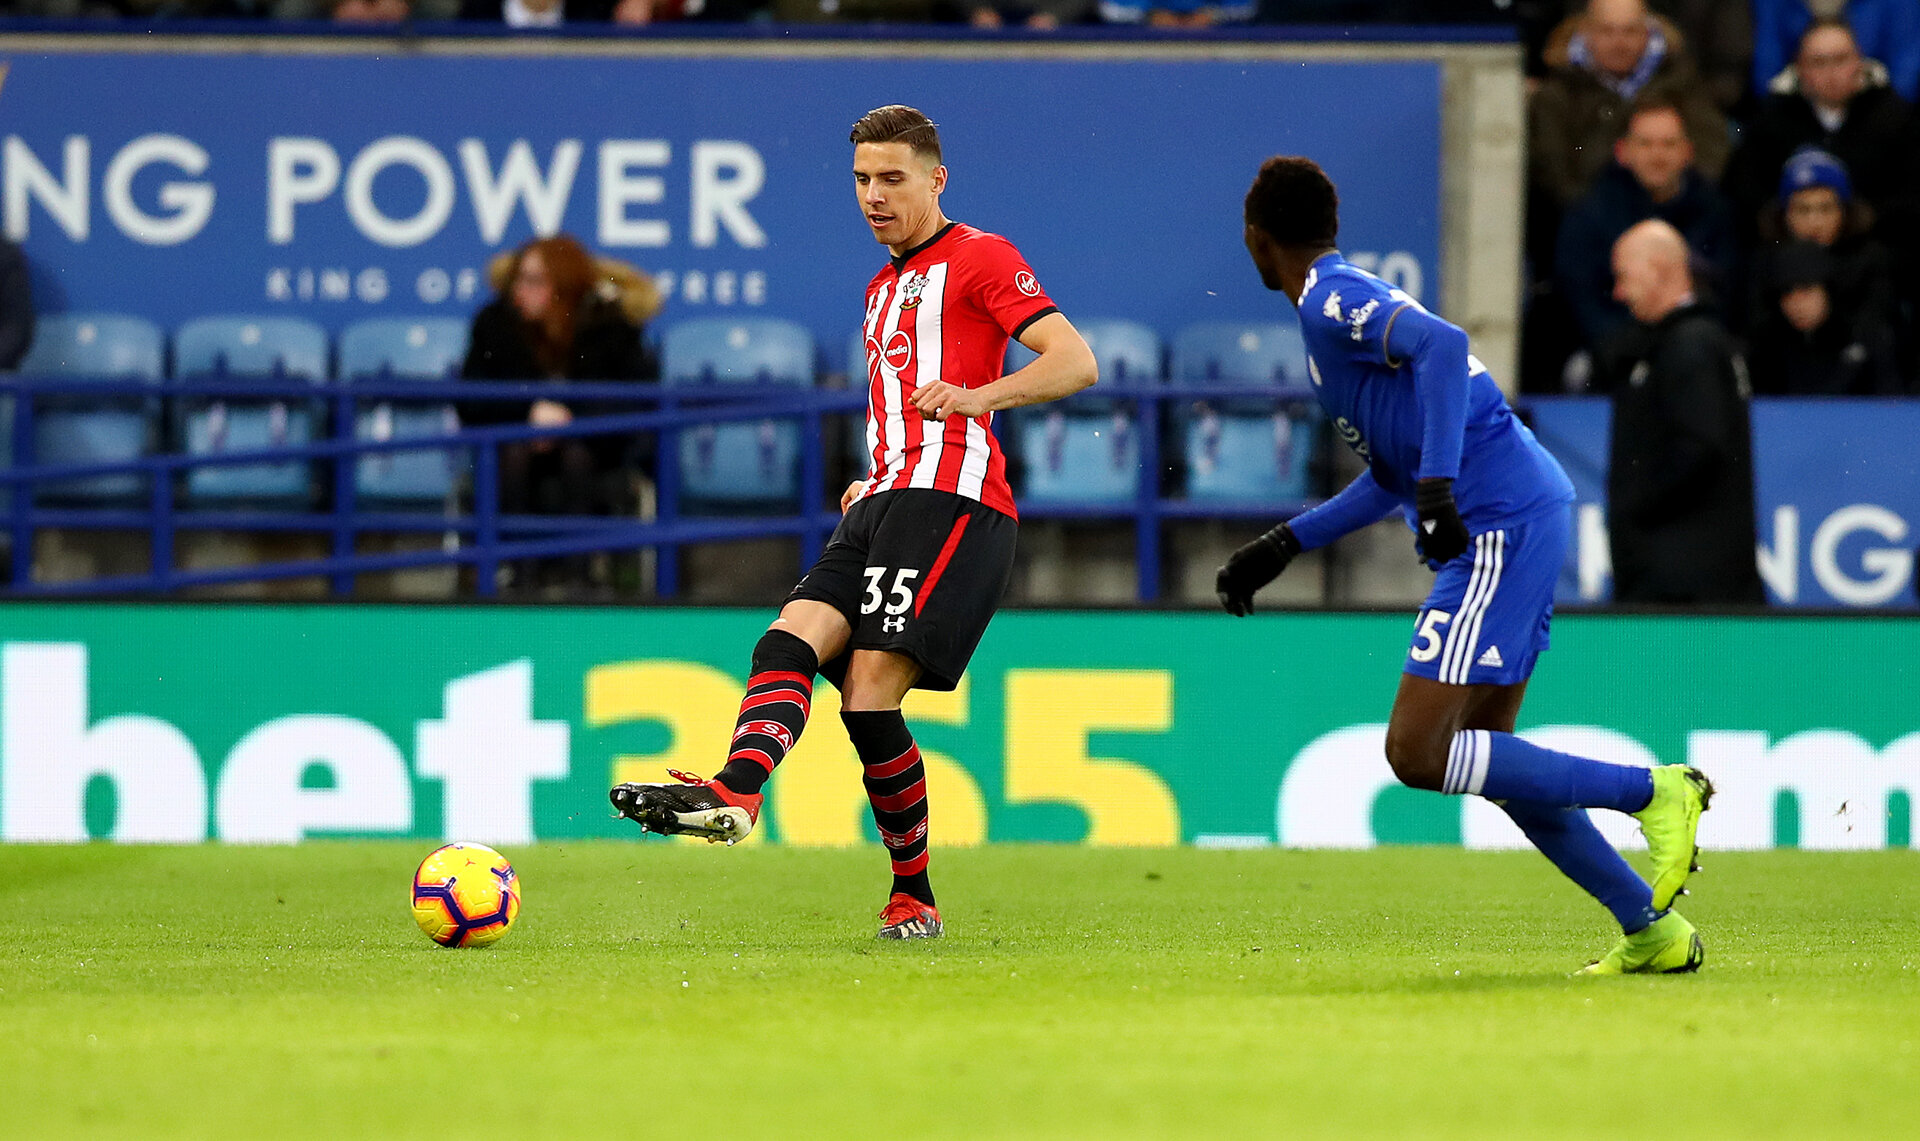 LEICESTER, ENGLAND - JANUARY 12: Jan Bednarek of Southampton during the Premier League match between Leicester City and Southampton FC at The King Power Stadium on January 12, 2019 in Leicester, United Kingdom. (Photo by Matt Watson/Southampton FC via Getty Images)